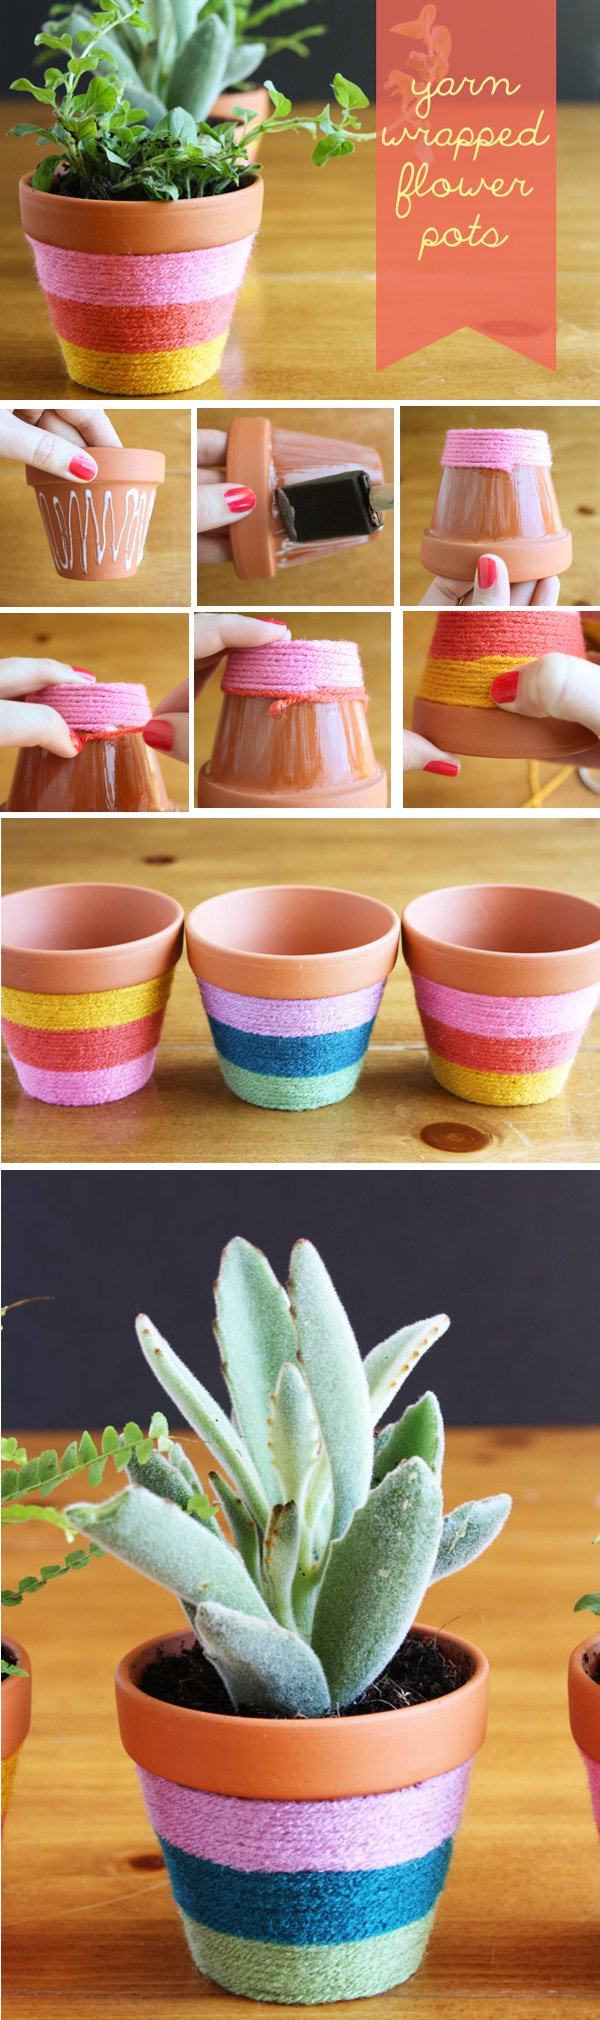 27 Yarn-Wrapped Flower Pots